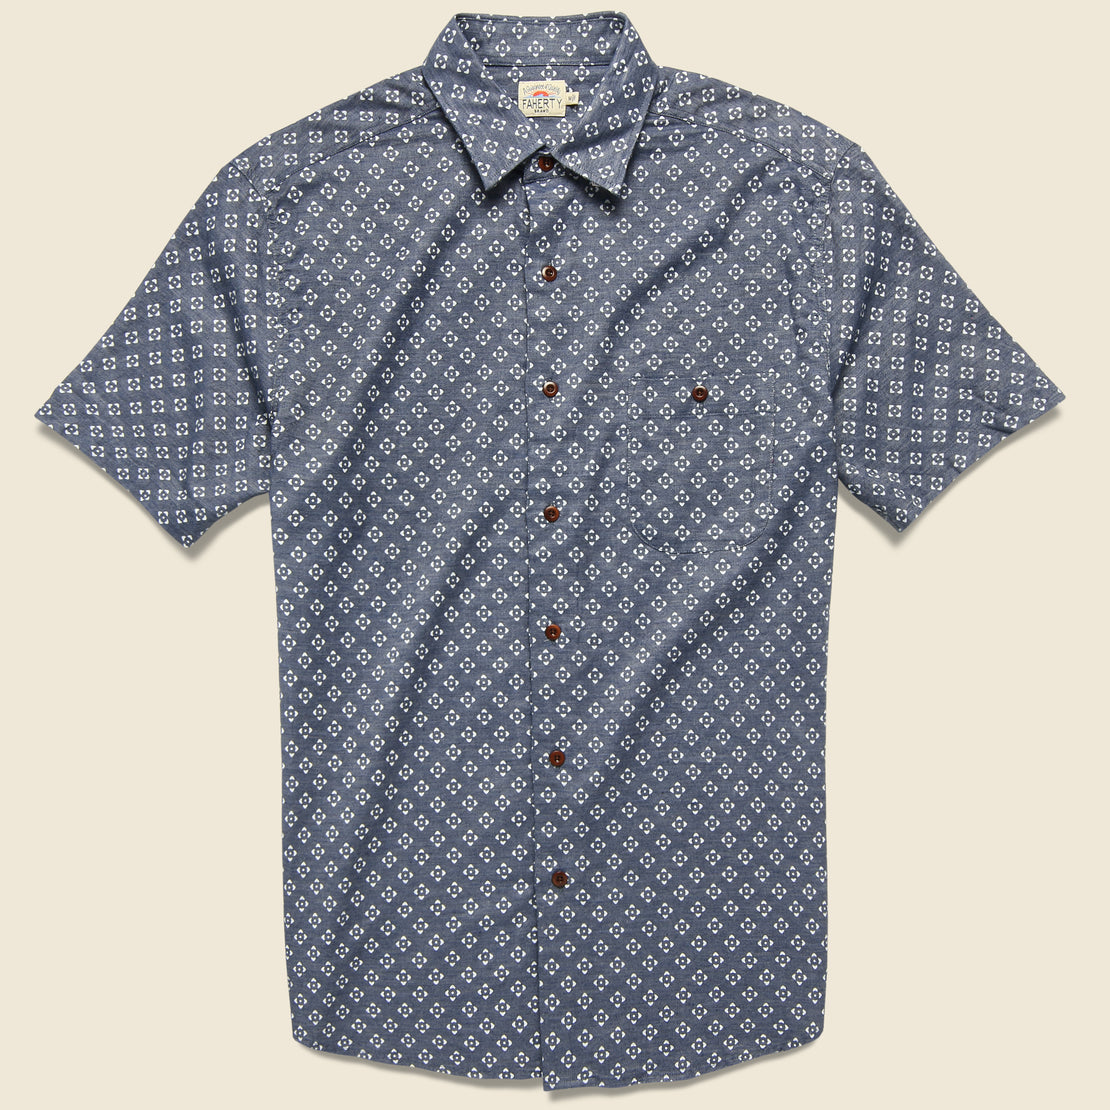 Faherty Coast Shirt - Atlas Print